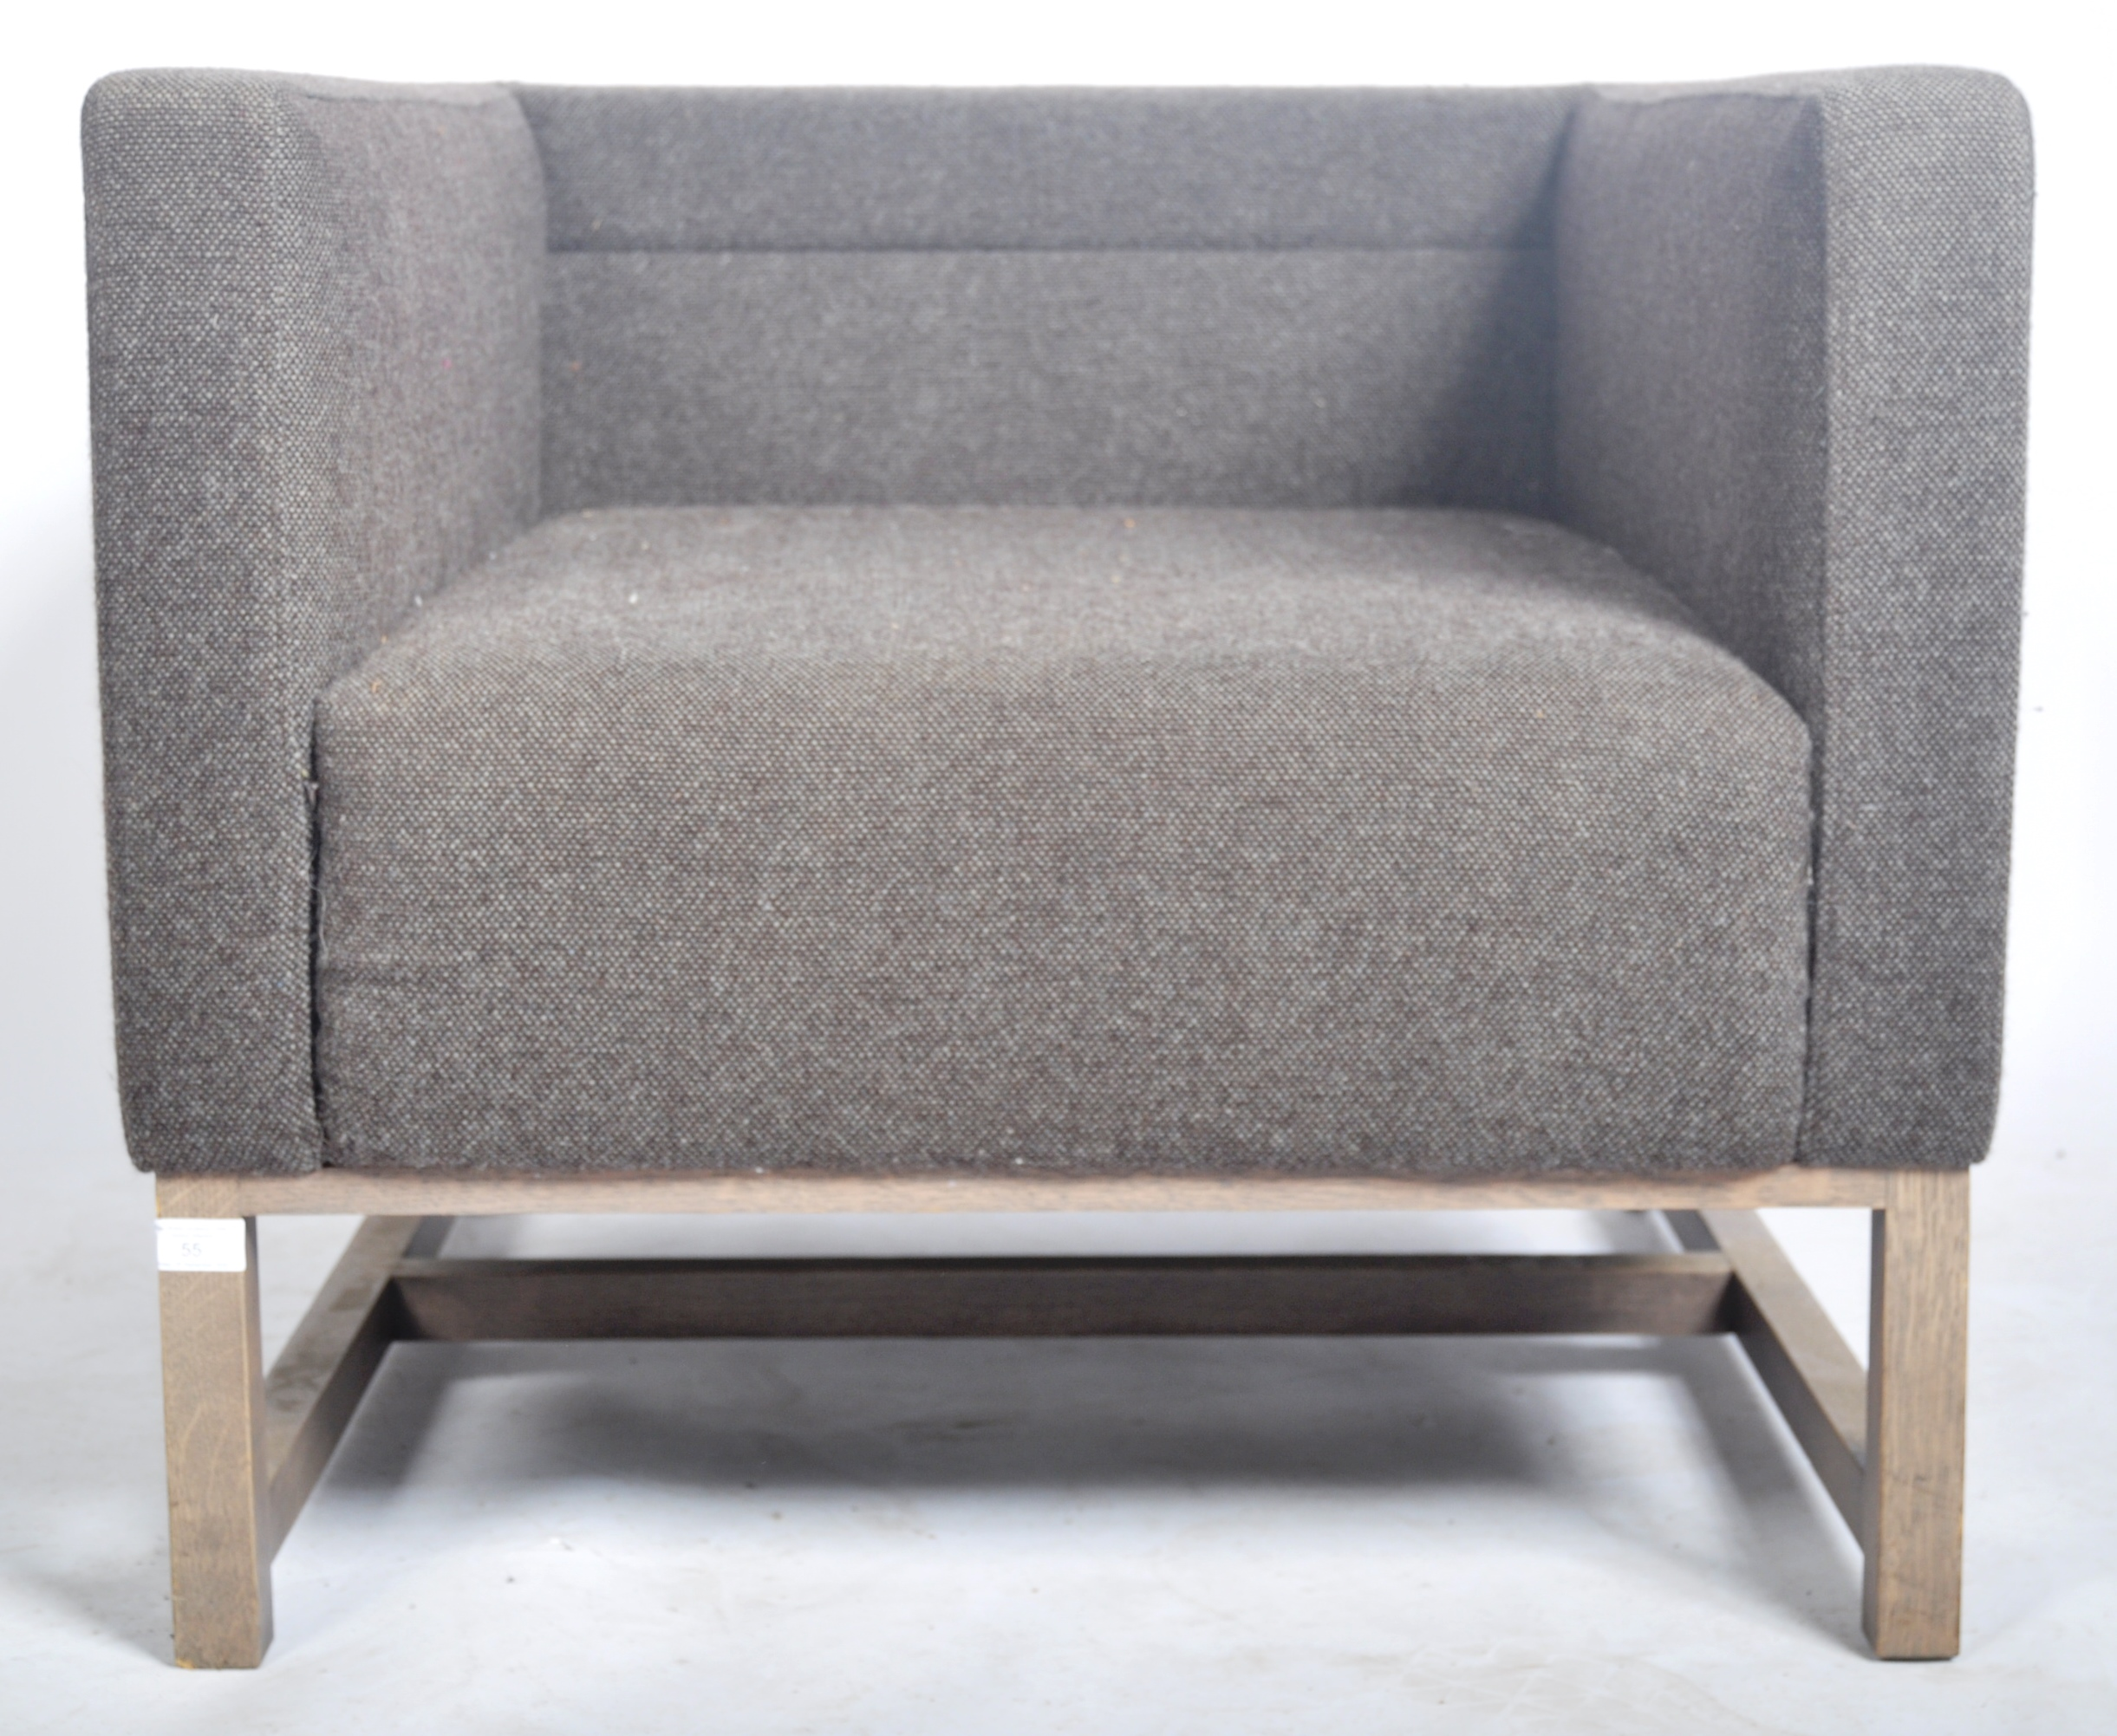 Lot 55 - LYNDON DESIGN - ORTEN ARMCHAIR / LOUNGE CHAIR HAVING GREY UPHOLSTERY